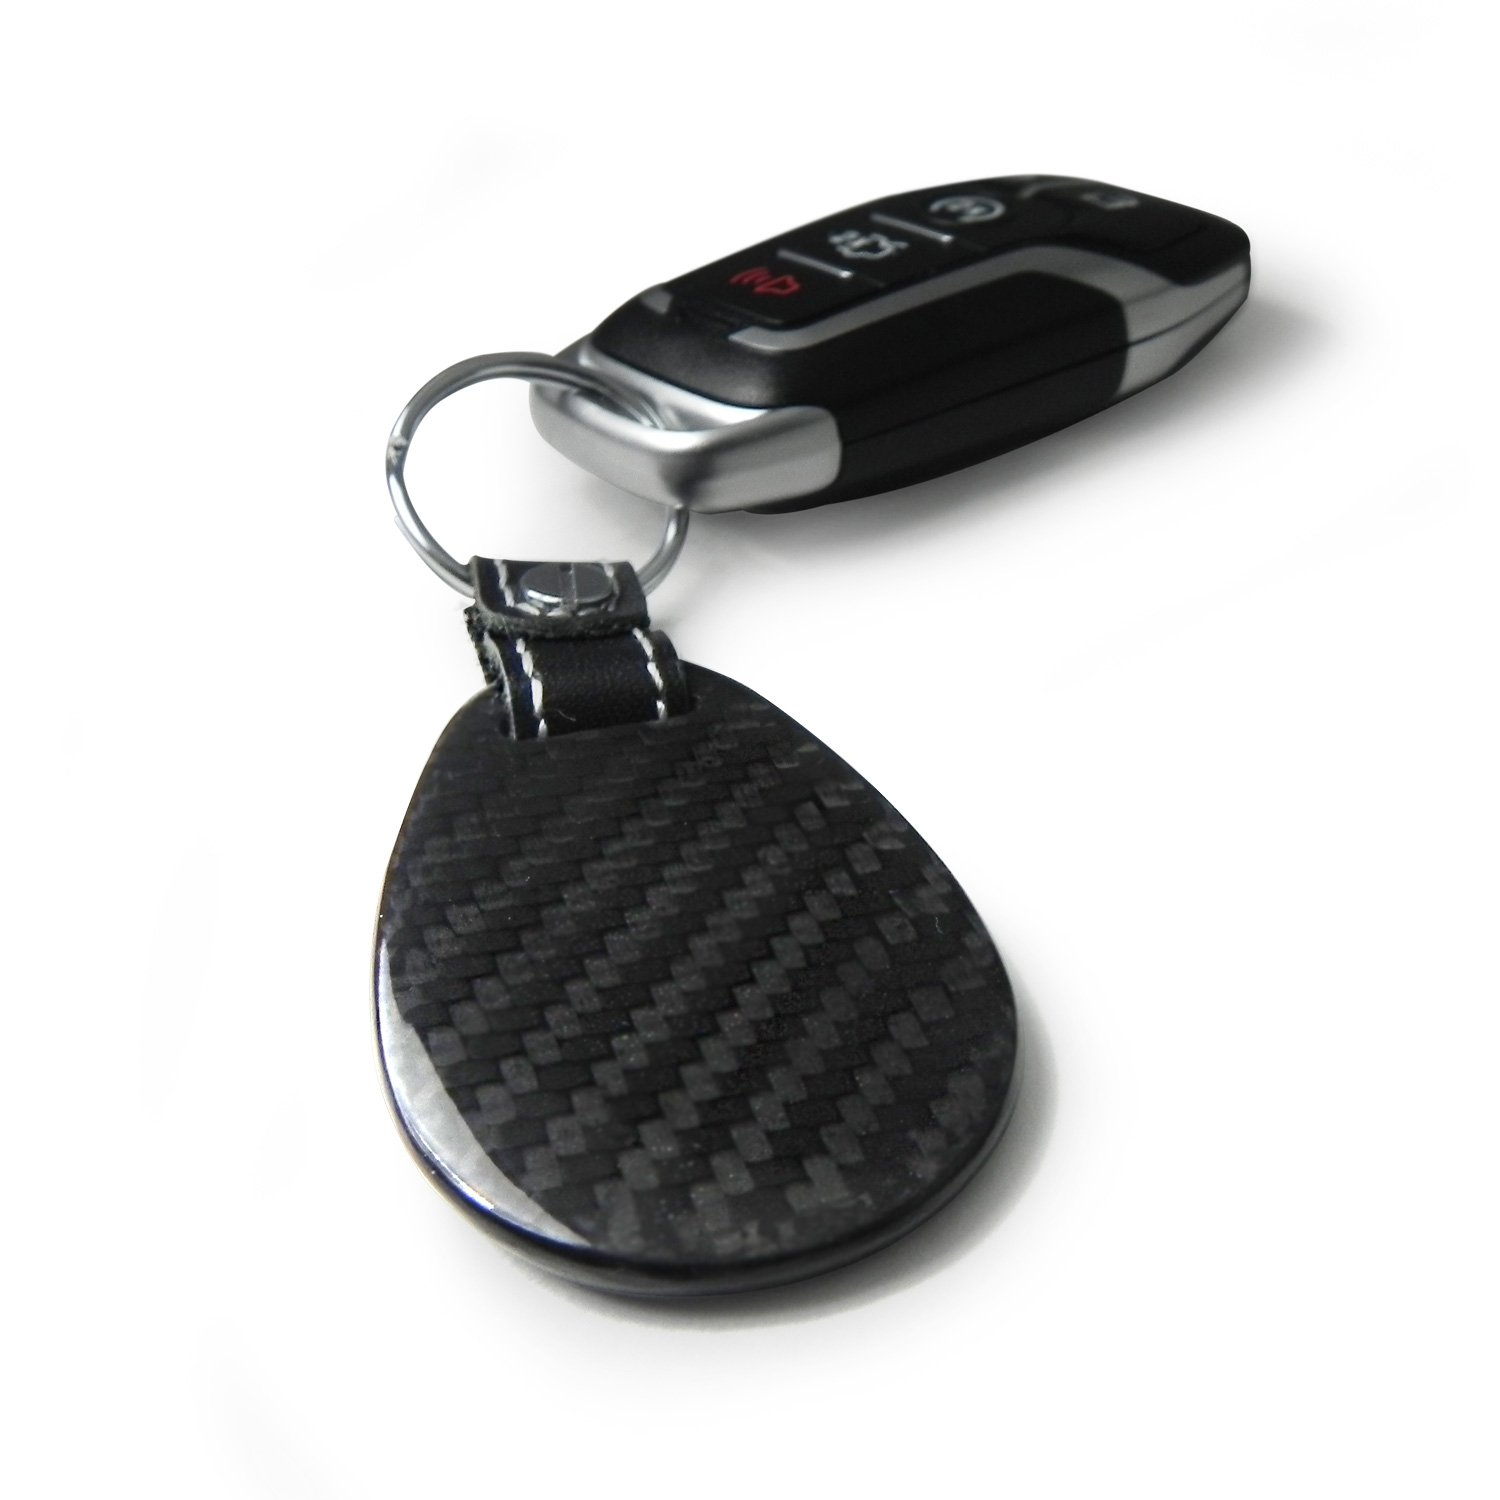 Honda Civic 100/% Real Carbon Fiber Large Tear Drop Key Chain iPick Image